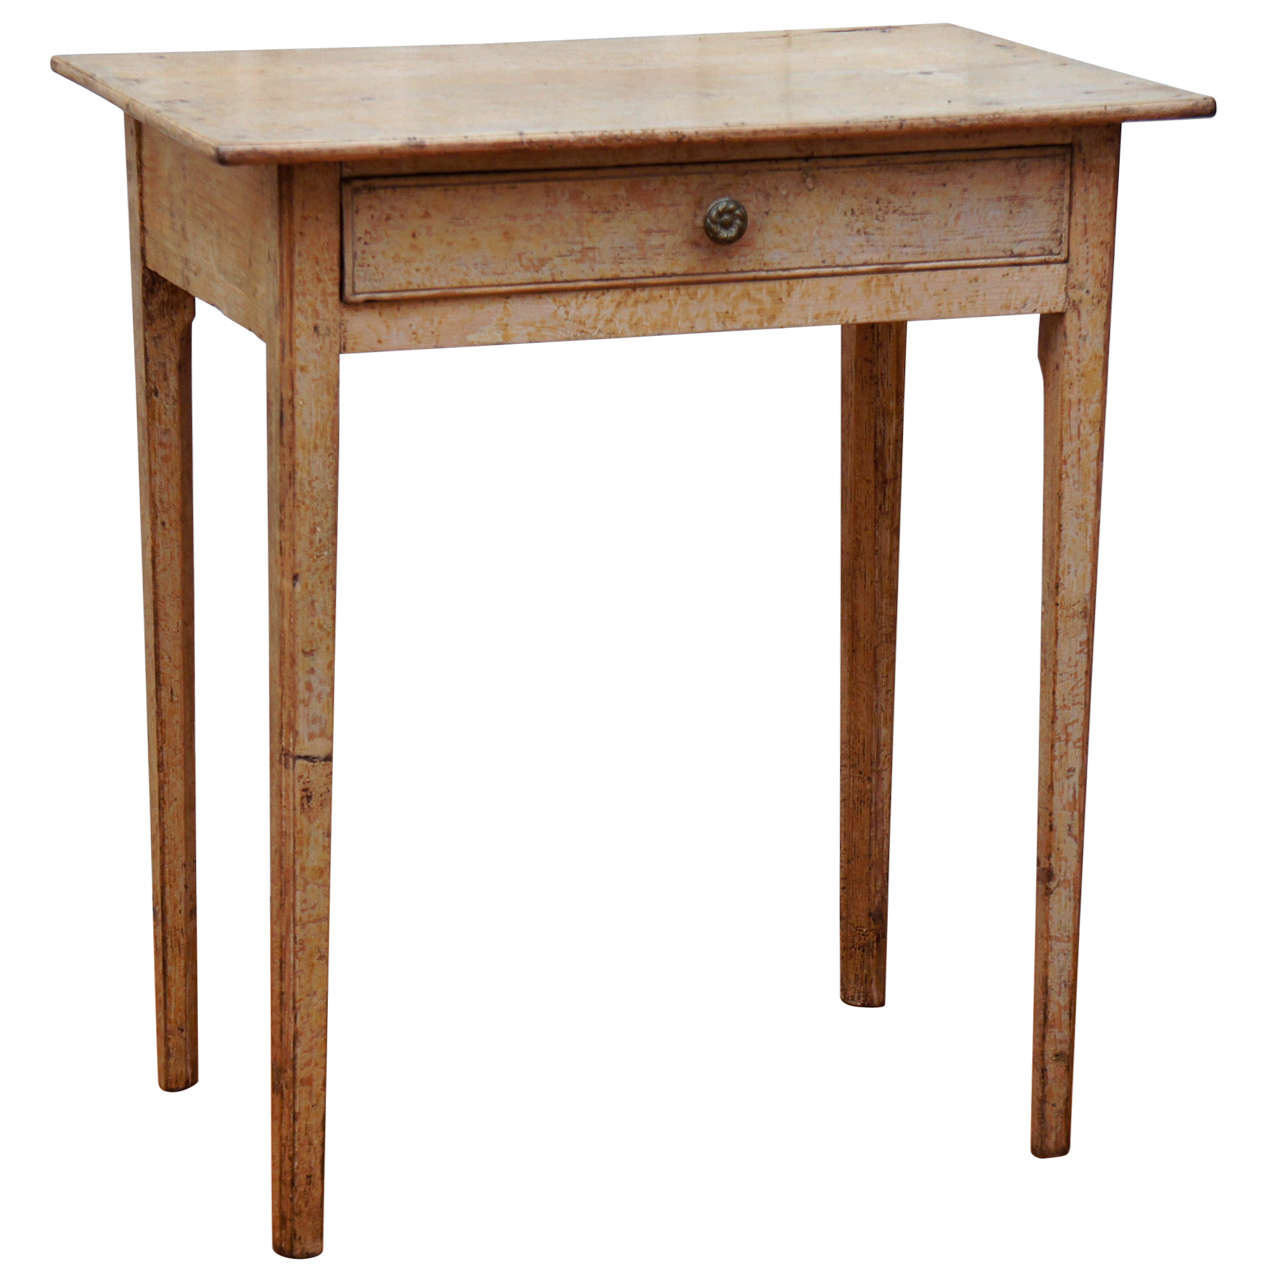 French Original Painted End Table At 1stdibs. Paint Formica Kitchen Cabinets. Used Base Kitchen Cabinets For Sale. Highest Rated Kitchen Cabinets. Standing Cabinets For Kitchen. Antique Brass Kitchen Cabinet Handles. Old World Style Kitchen Cabinets. Walnut Kitchen Cabinet. Amish Kitchen Cabinets